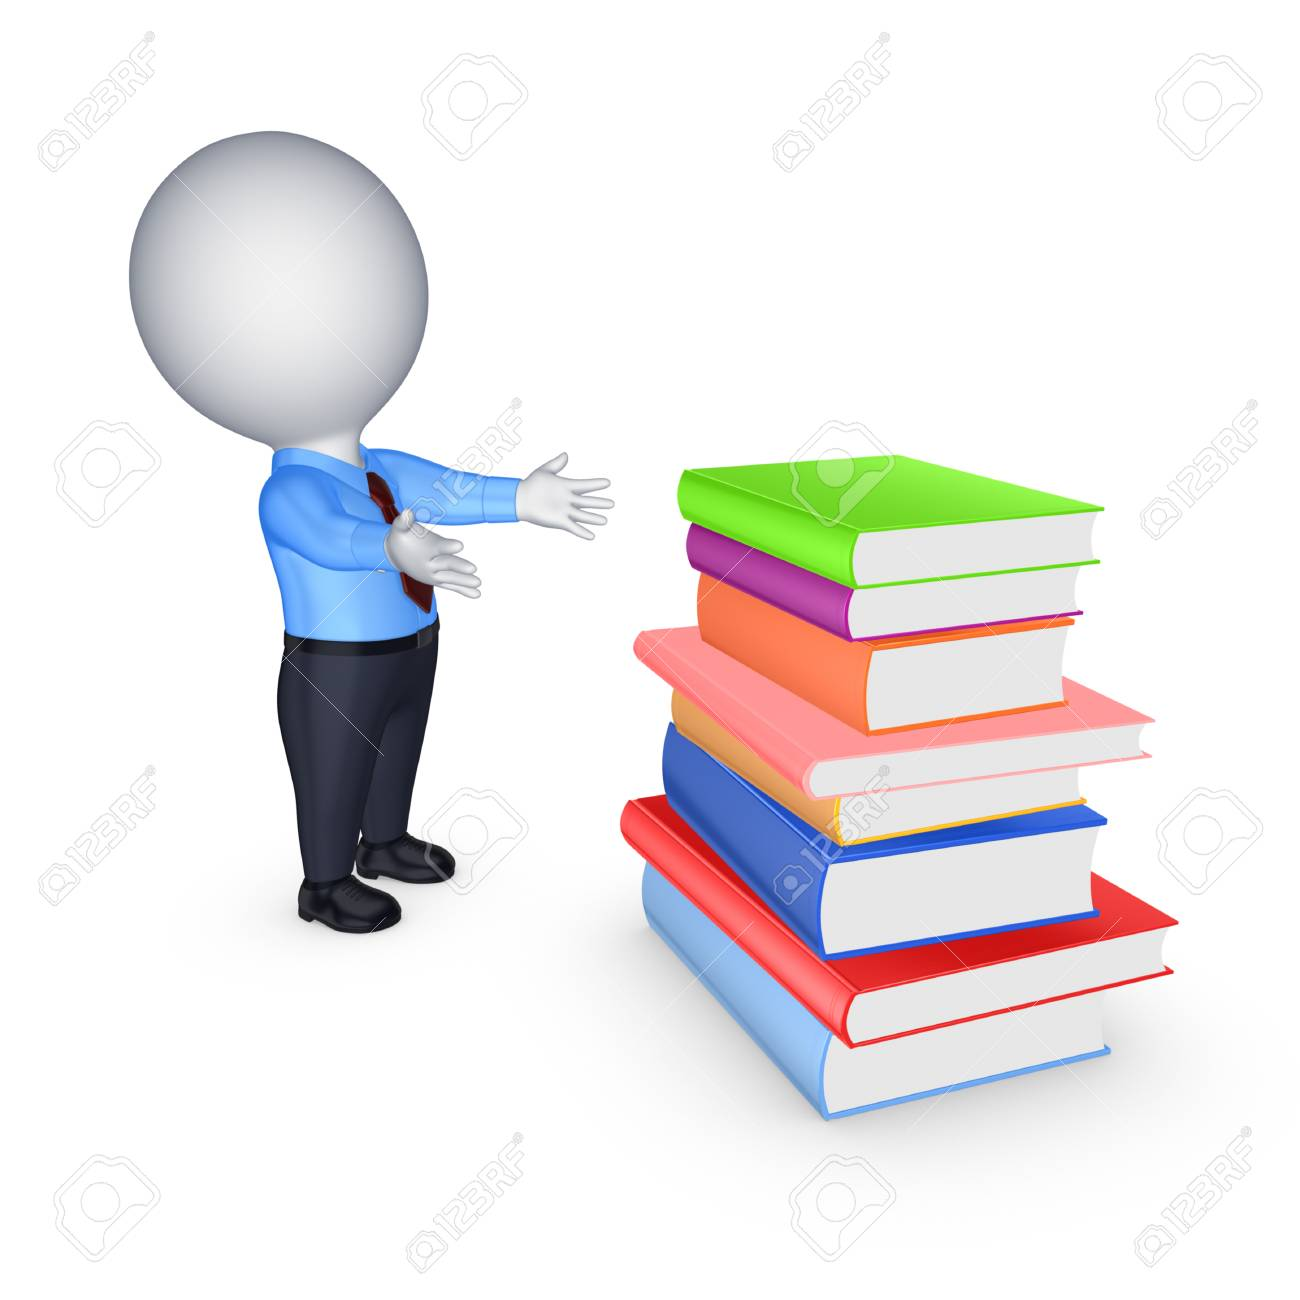 3d small person and big stack of colorful books.Isolated on white. Stock Photo - 22472464